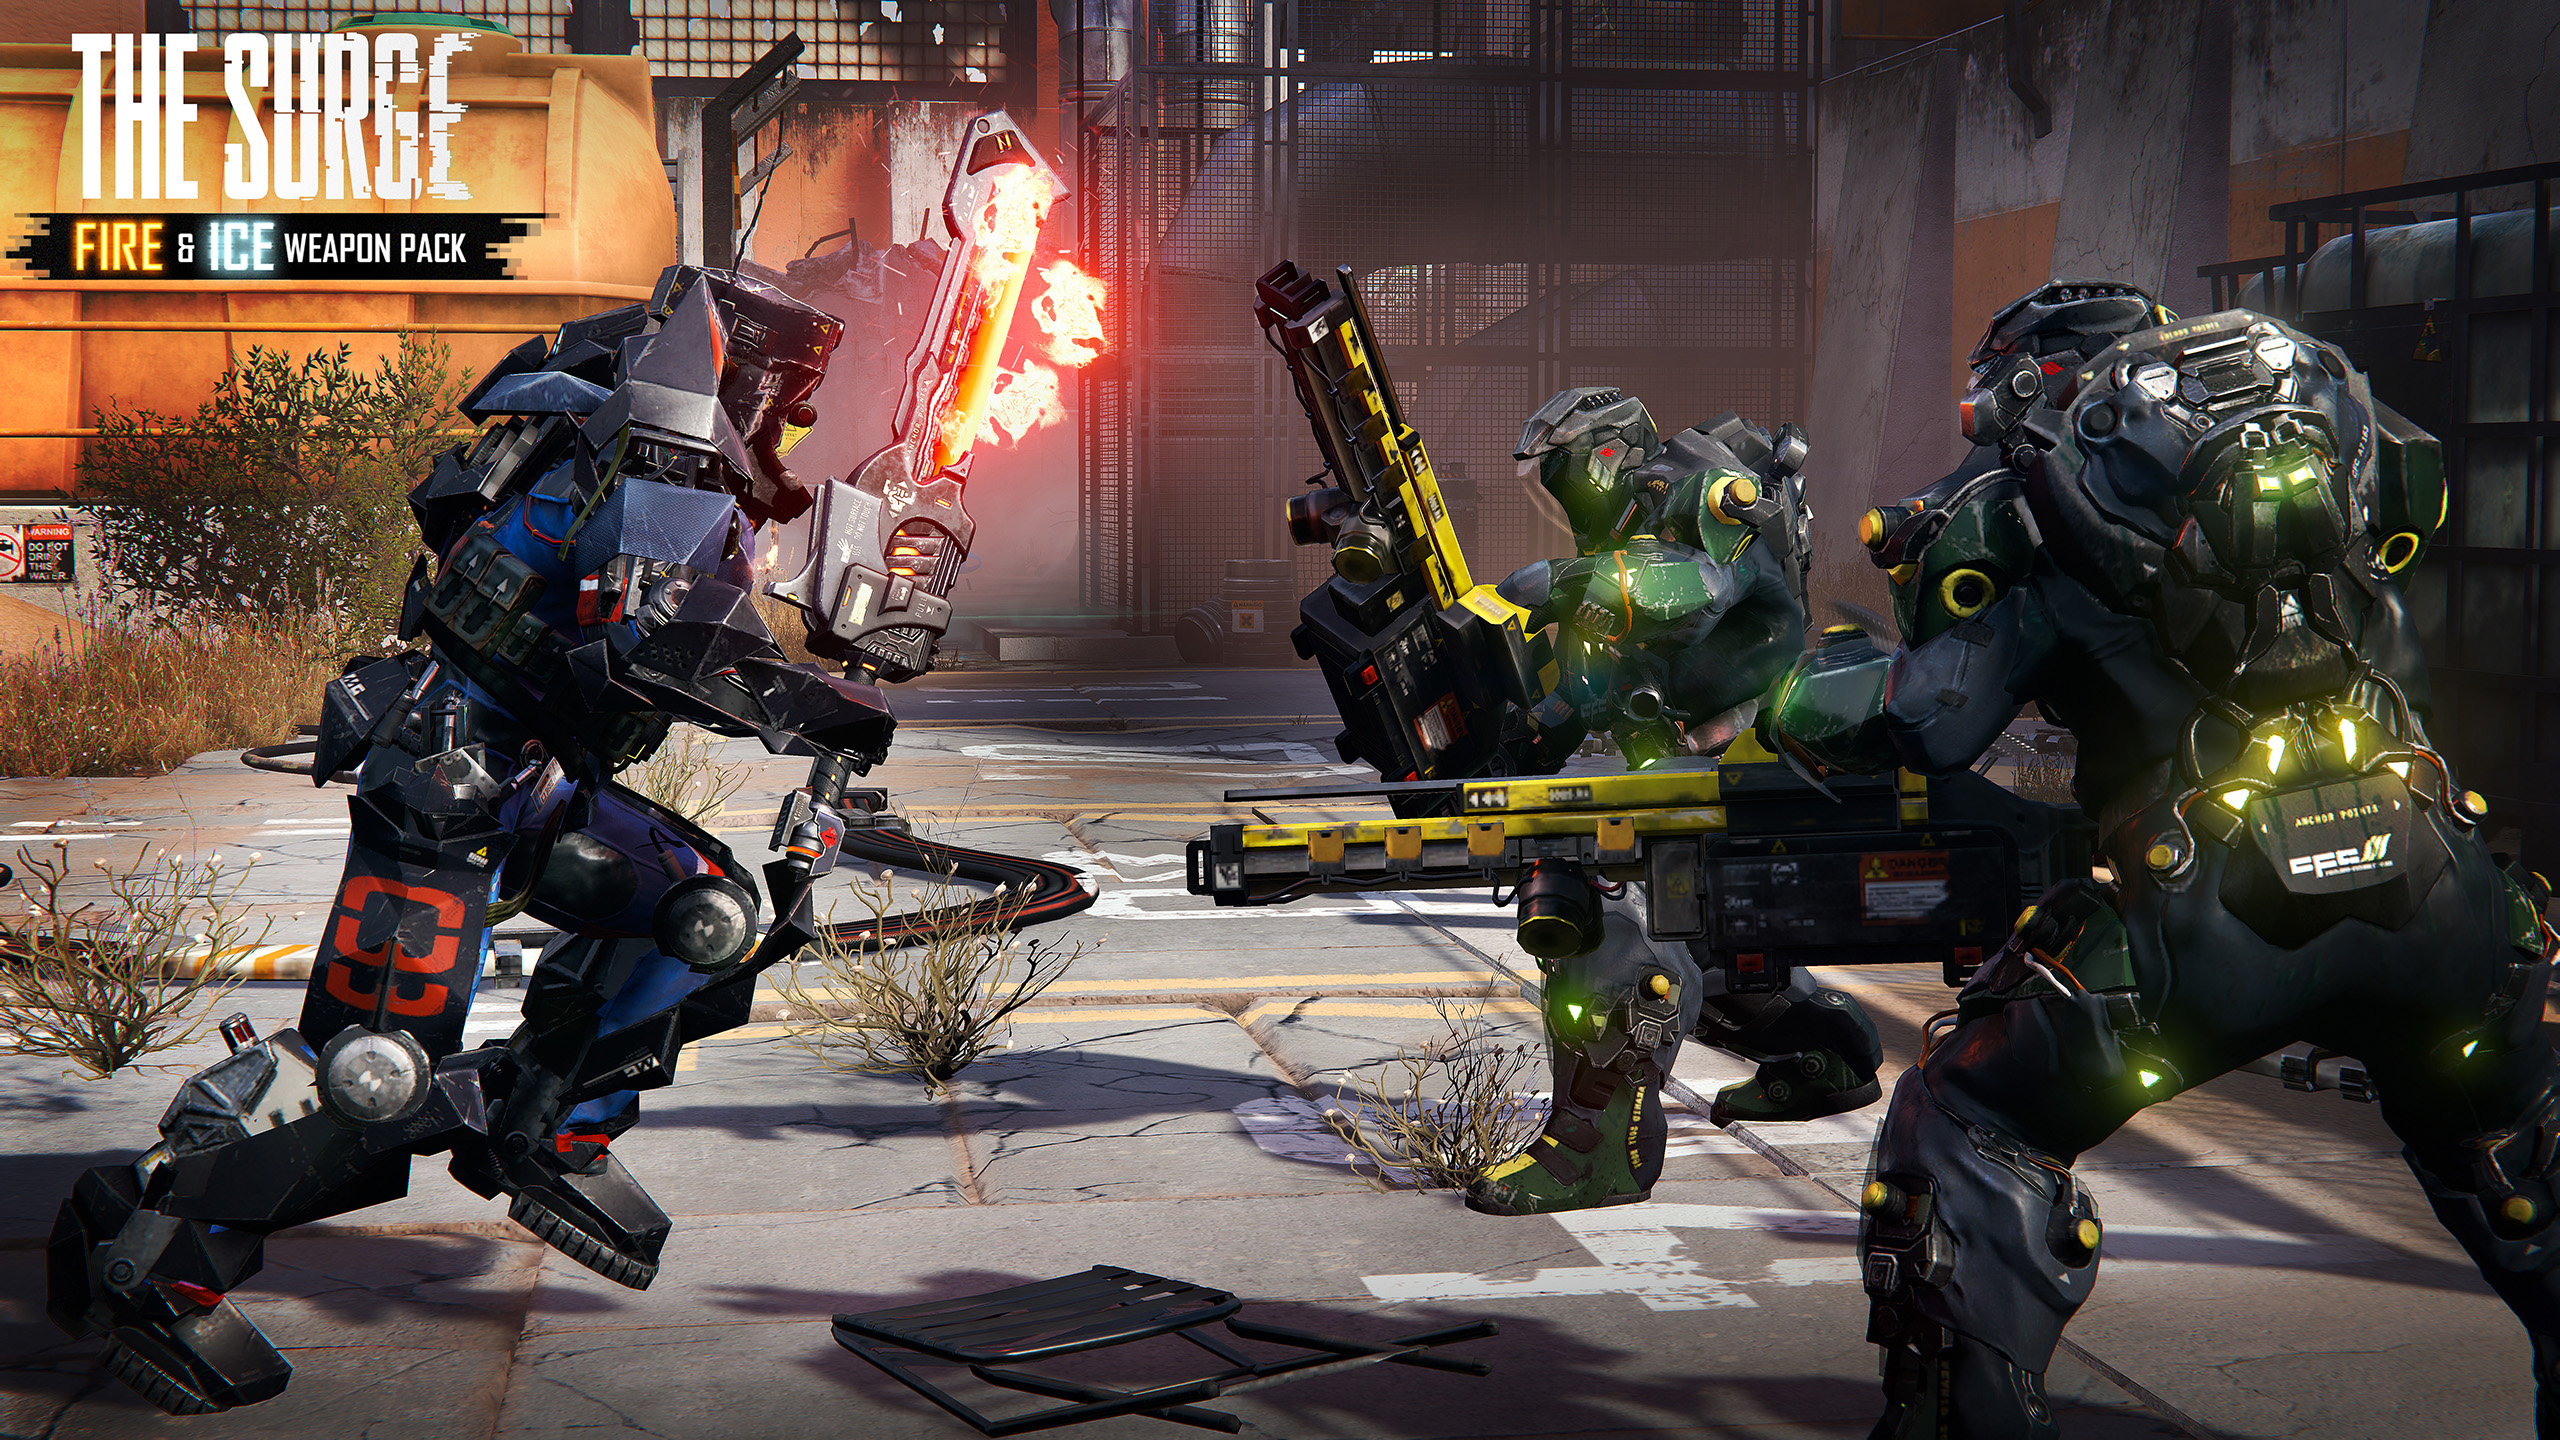 221824_a7ZcawGV4J_thesurge_weapondlc_03.